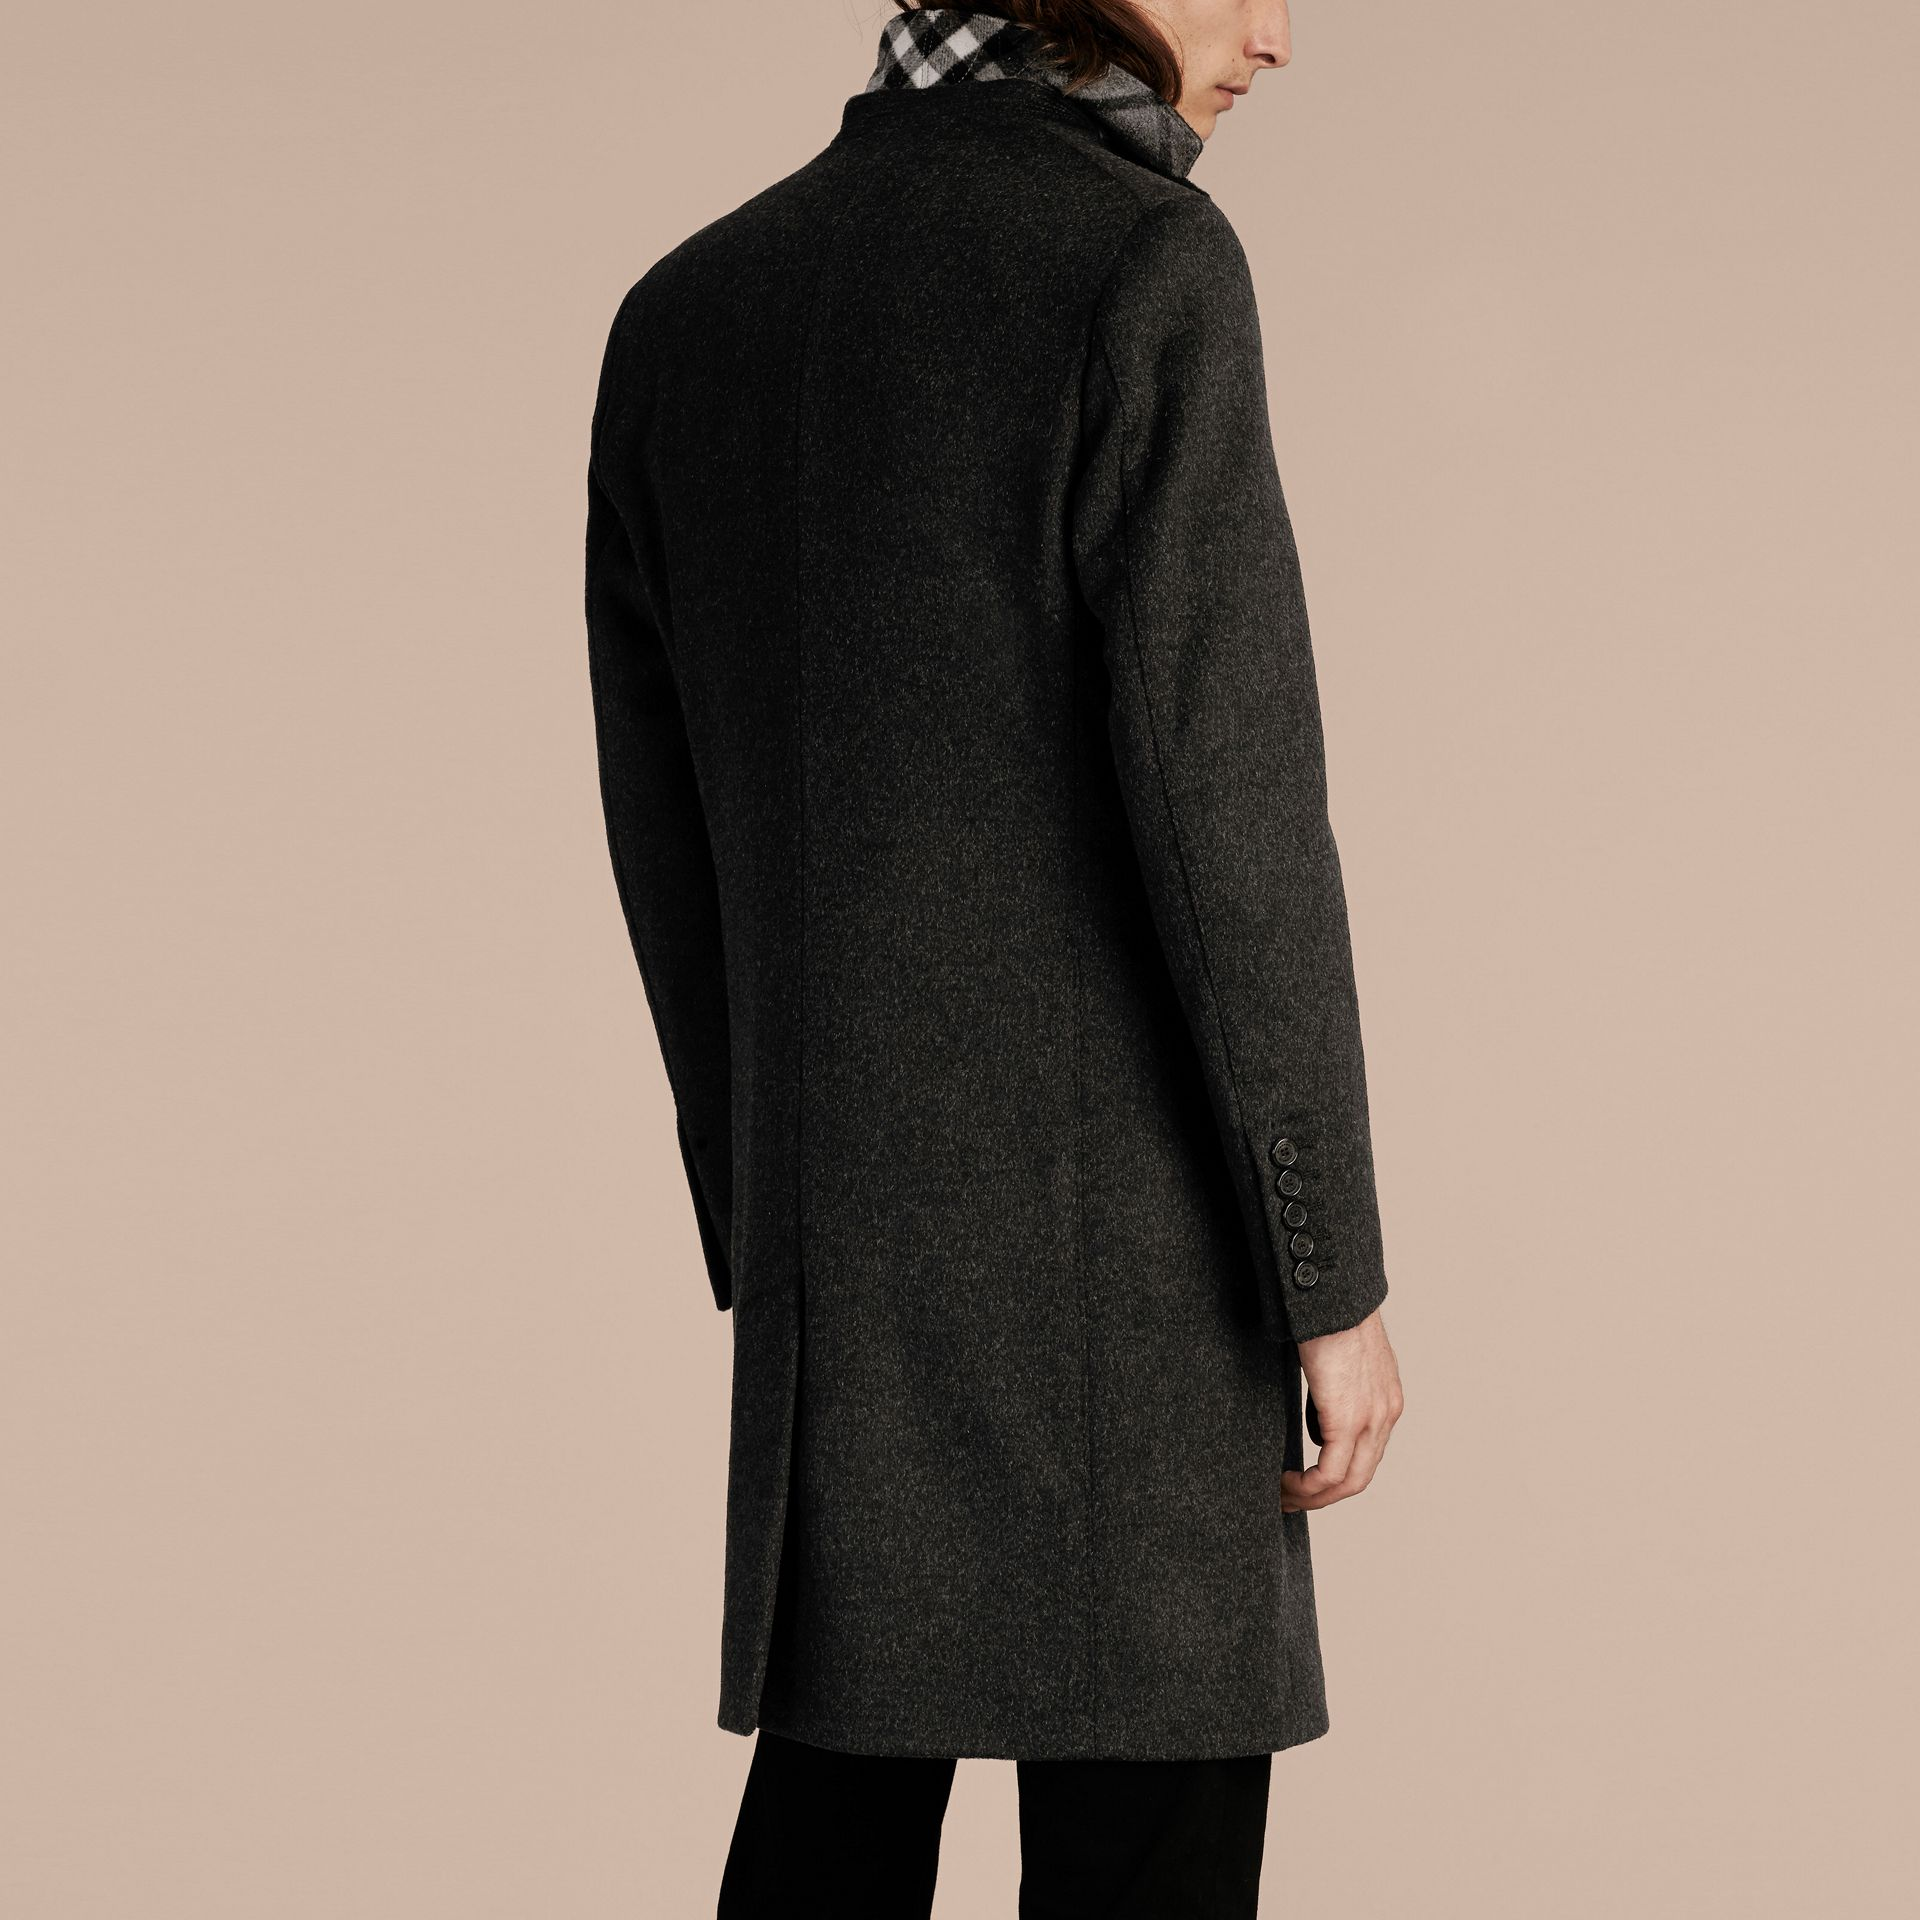 Dark grey melange Wool Cashmere Coat with Detachable Warmer - gallery image 3